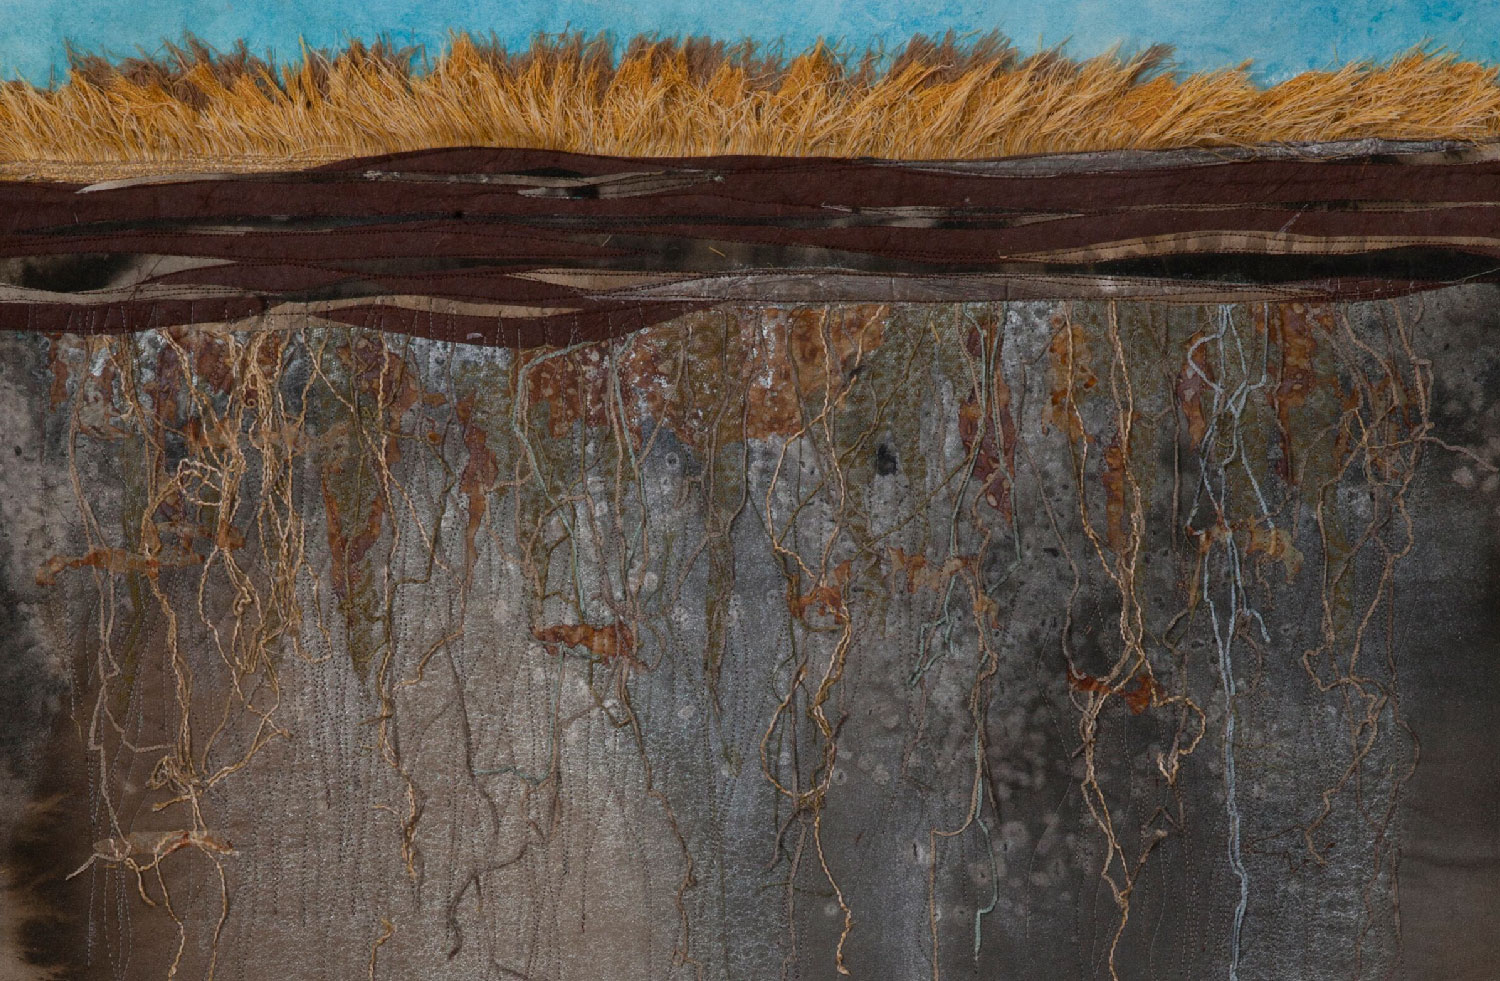 soil-horizon-roots-blue-sky-golden-grass-web-res.jpg